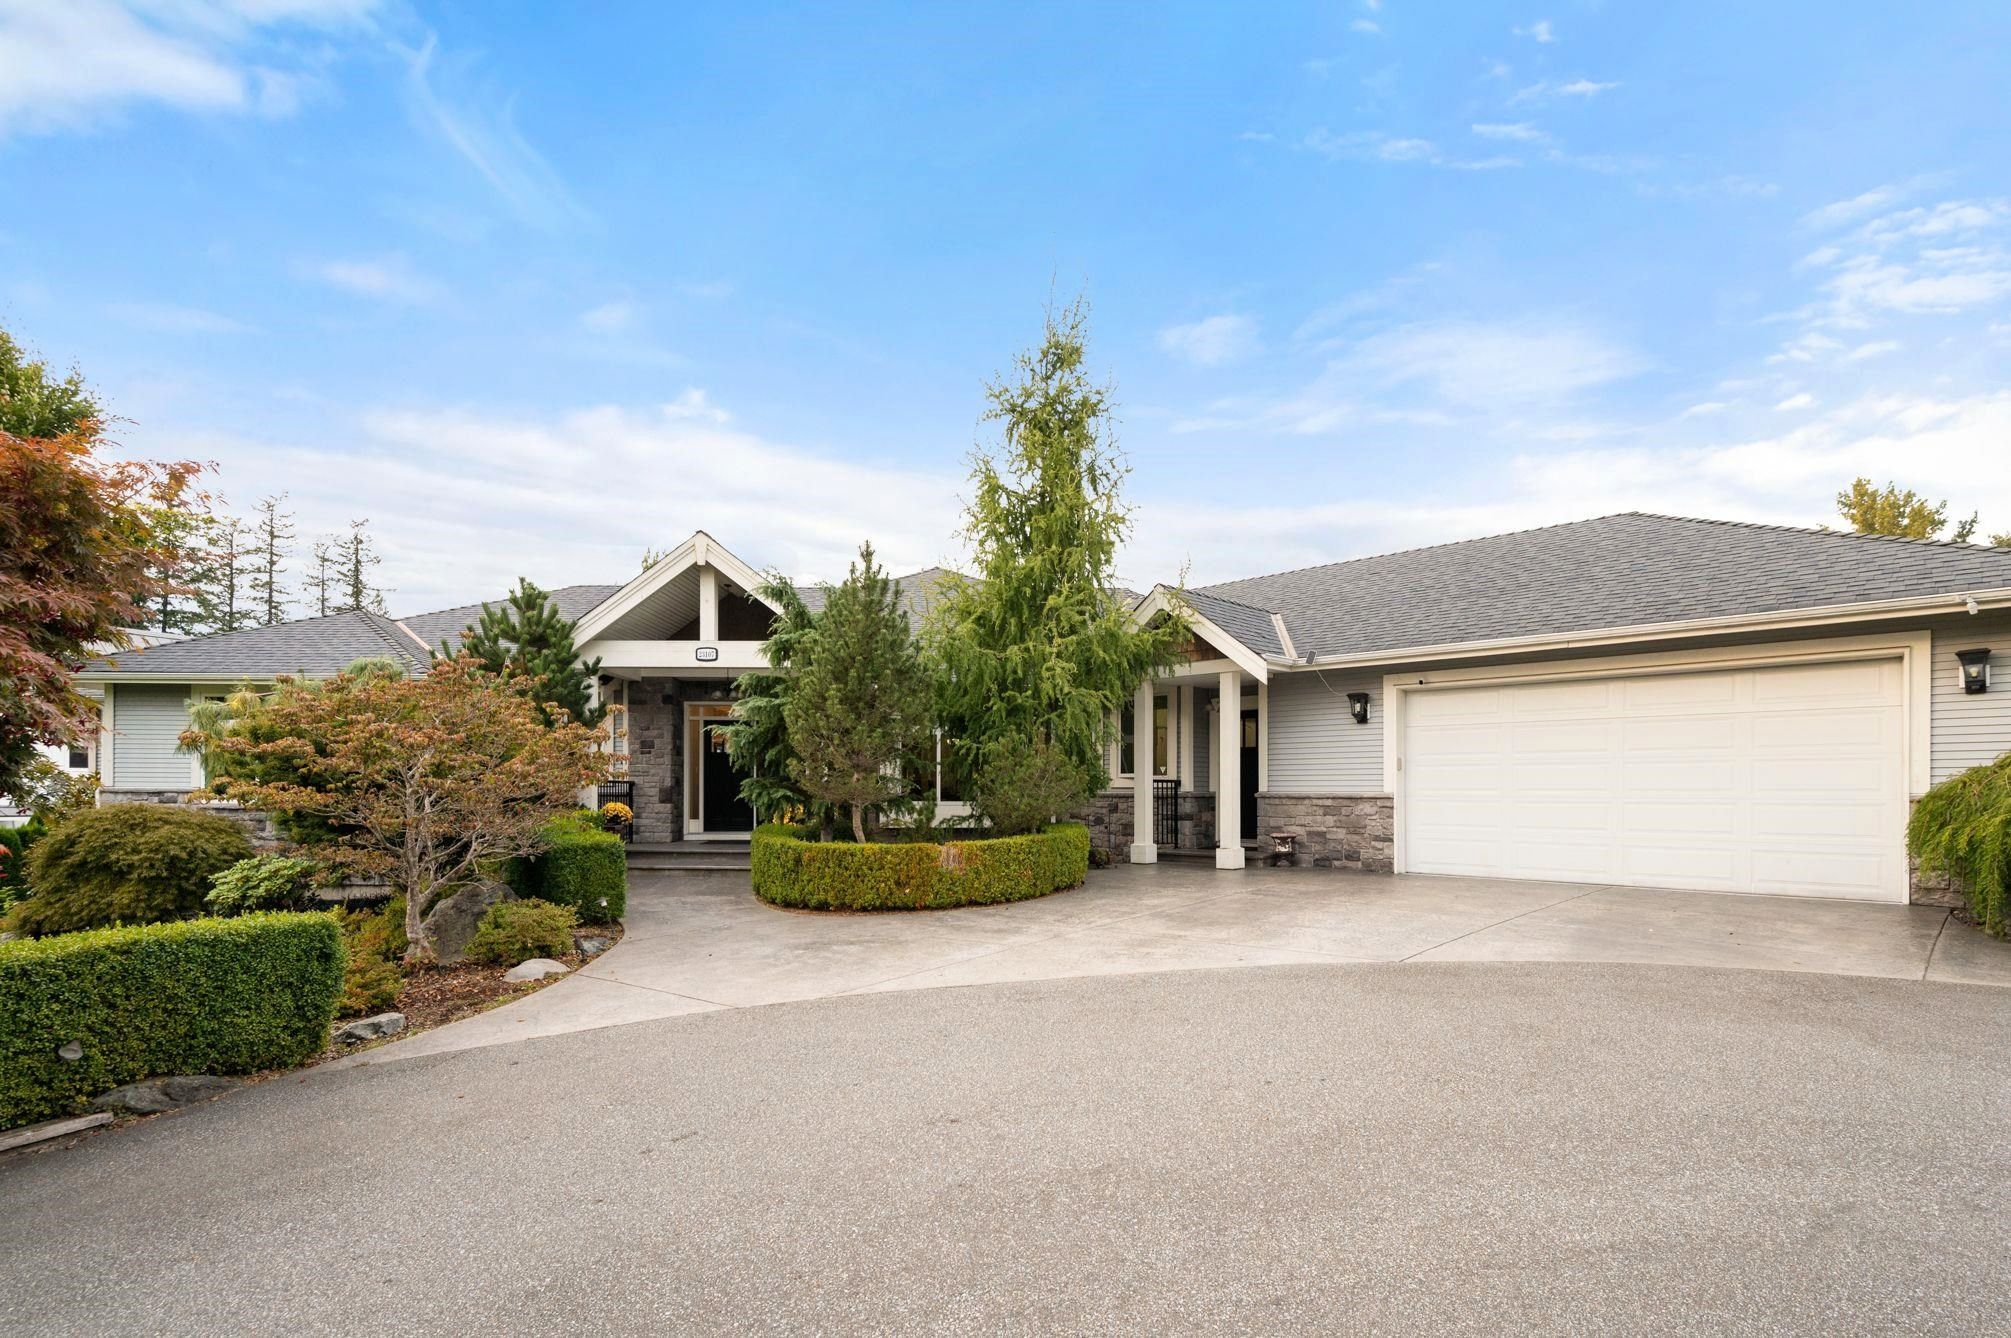 """Main Photo: 23107 80 Avenue in Langley: Fort Langley House for sale in """"Forest Knolls"""" : MLS®# R2623785"""